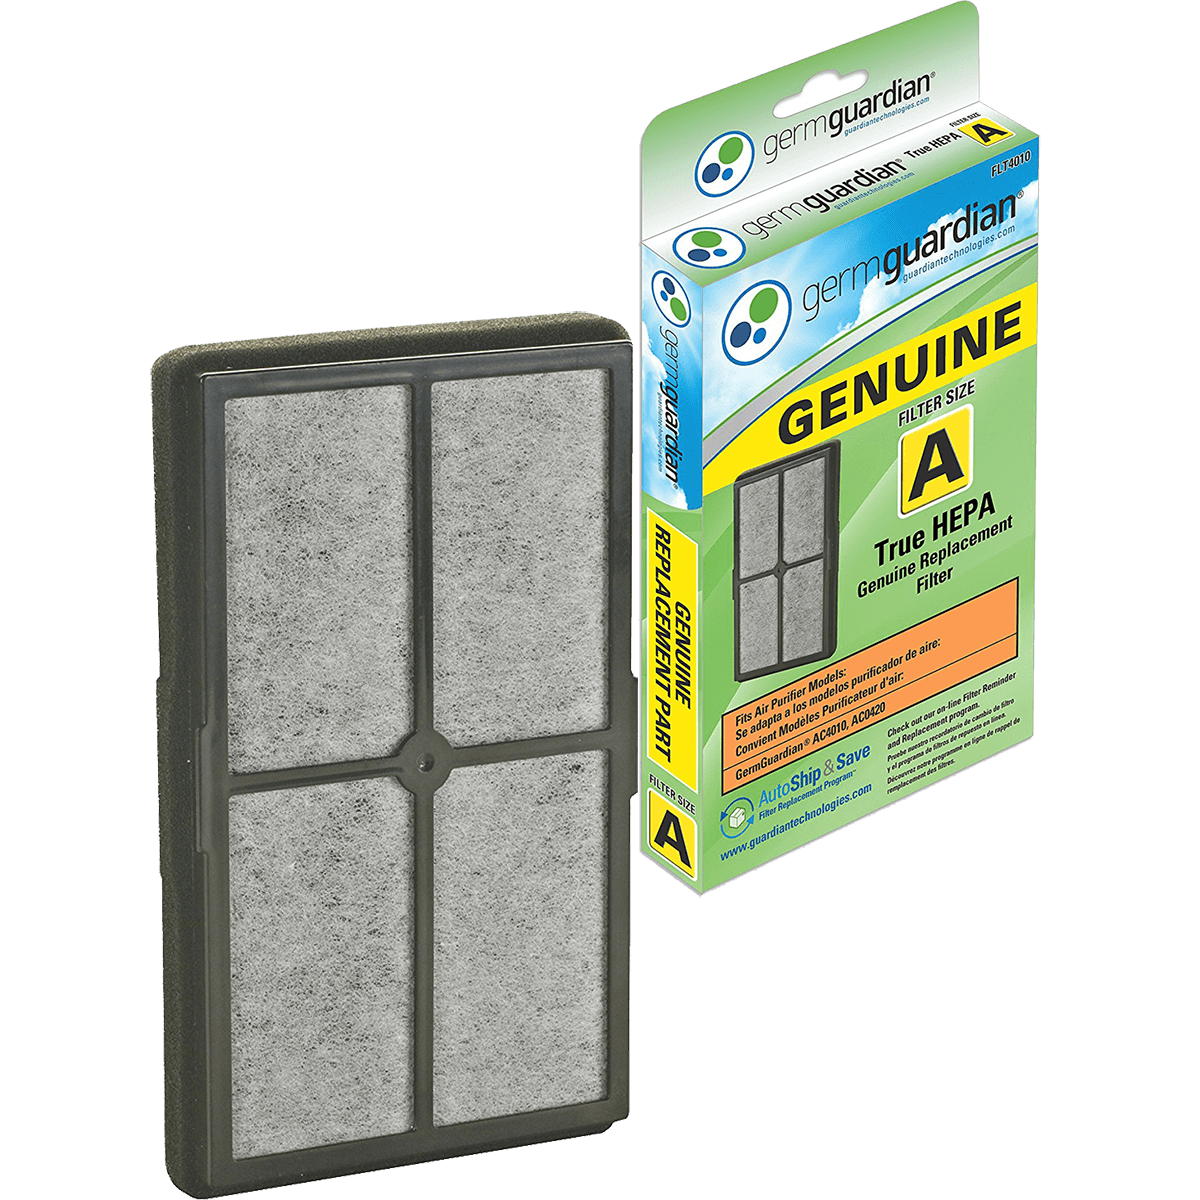 Germ Guardian HEPA Replacement Filter A (FLT4010) ge4184